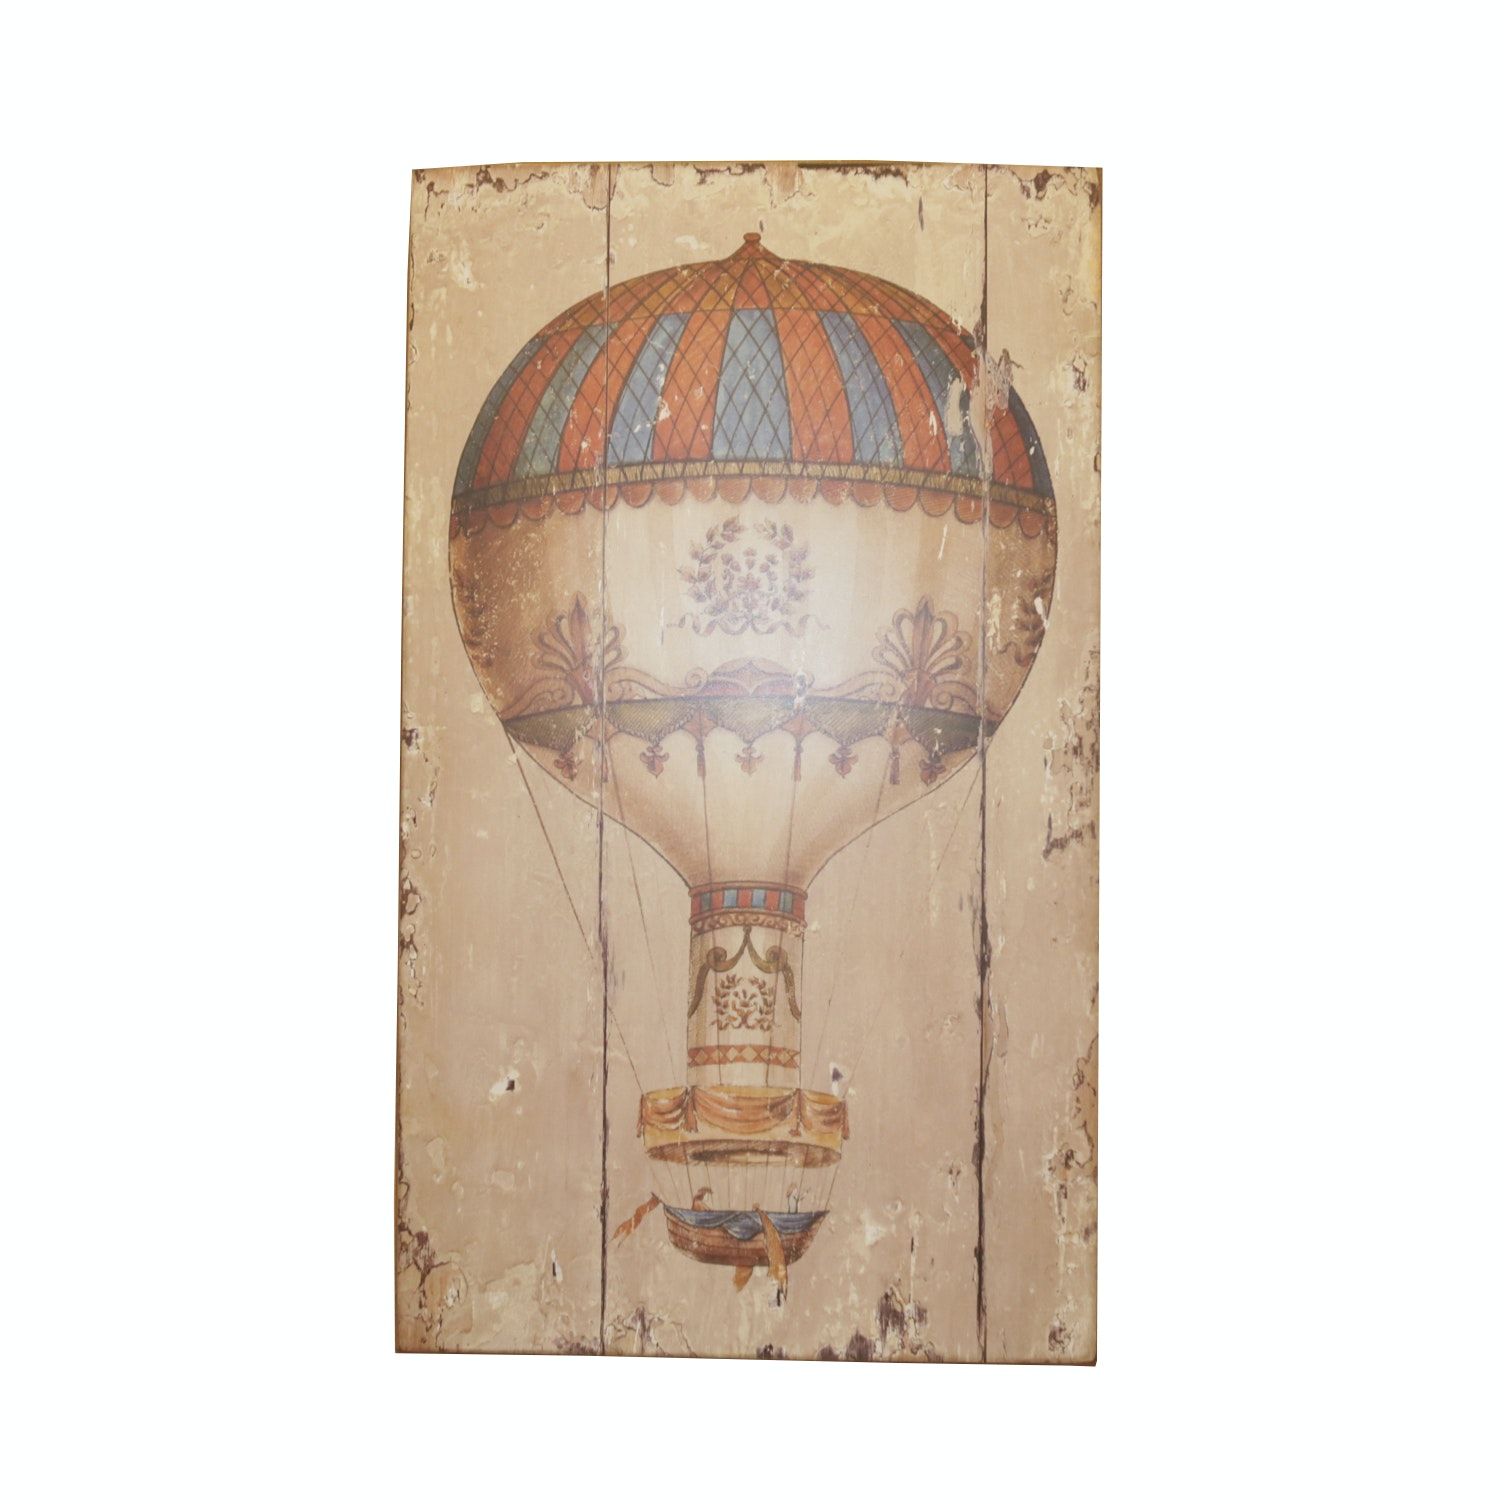 Contemporary Wooden Wall Art Featuring Print Of Vintage Hot Air Balloon ...